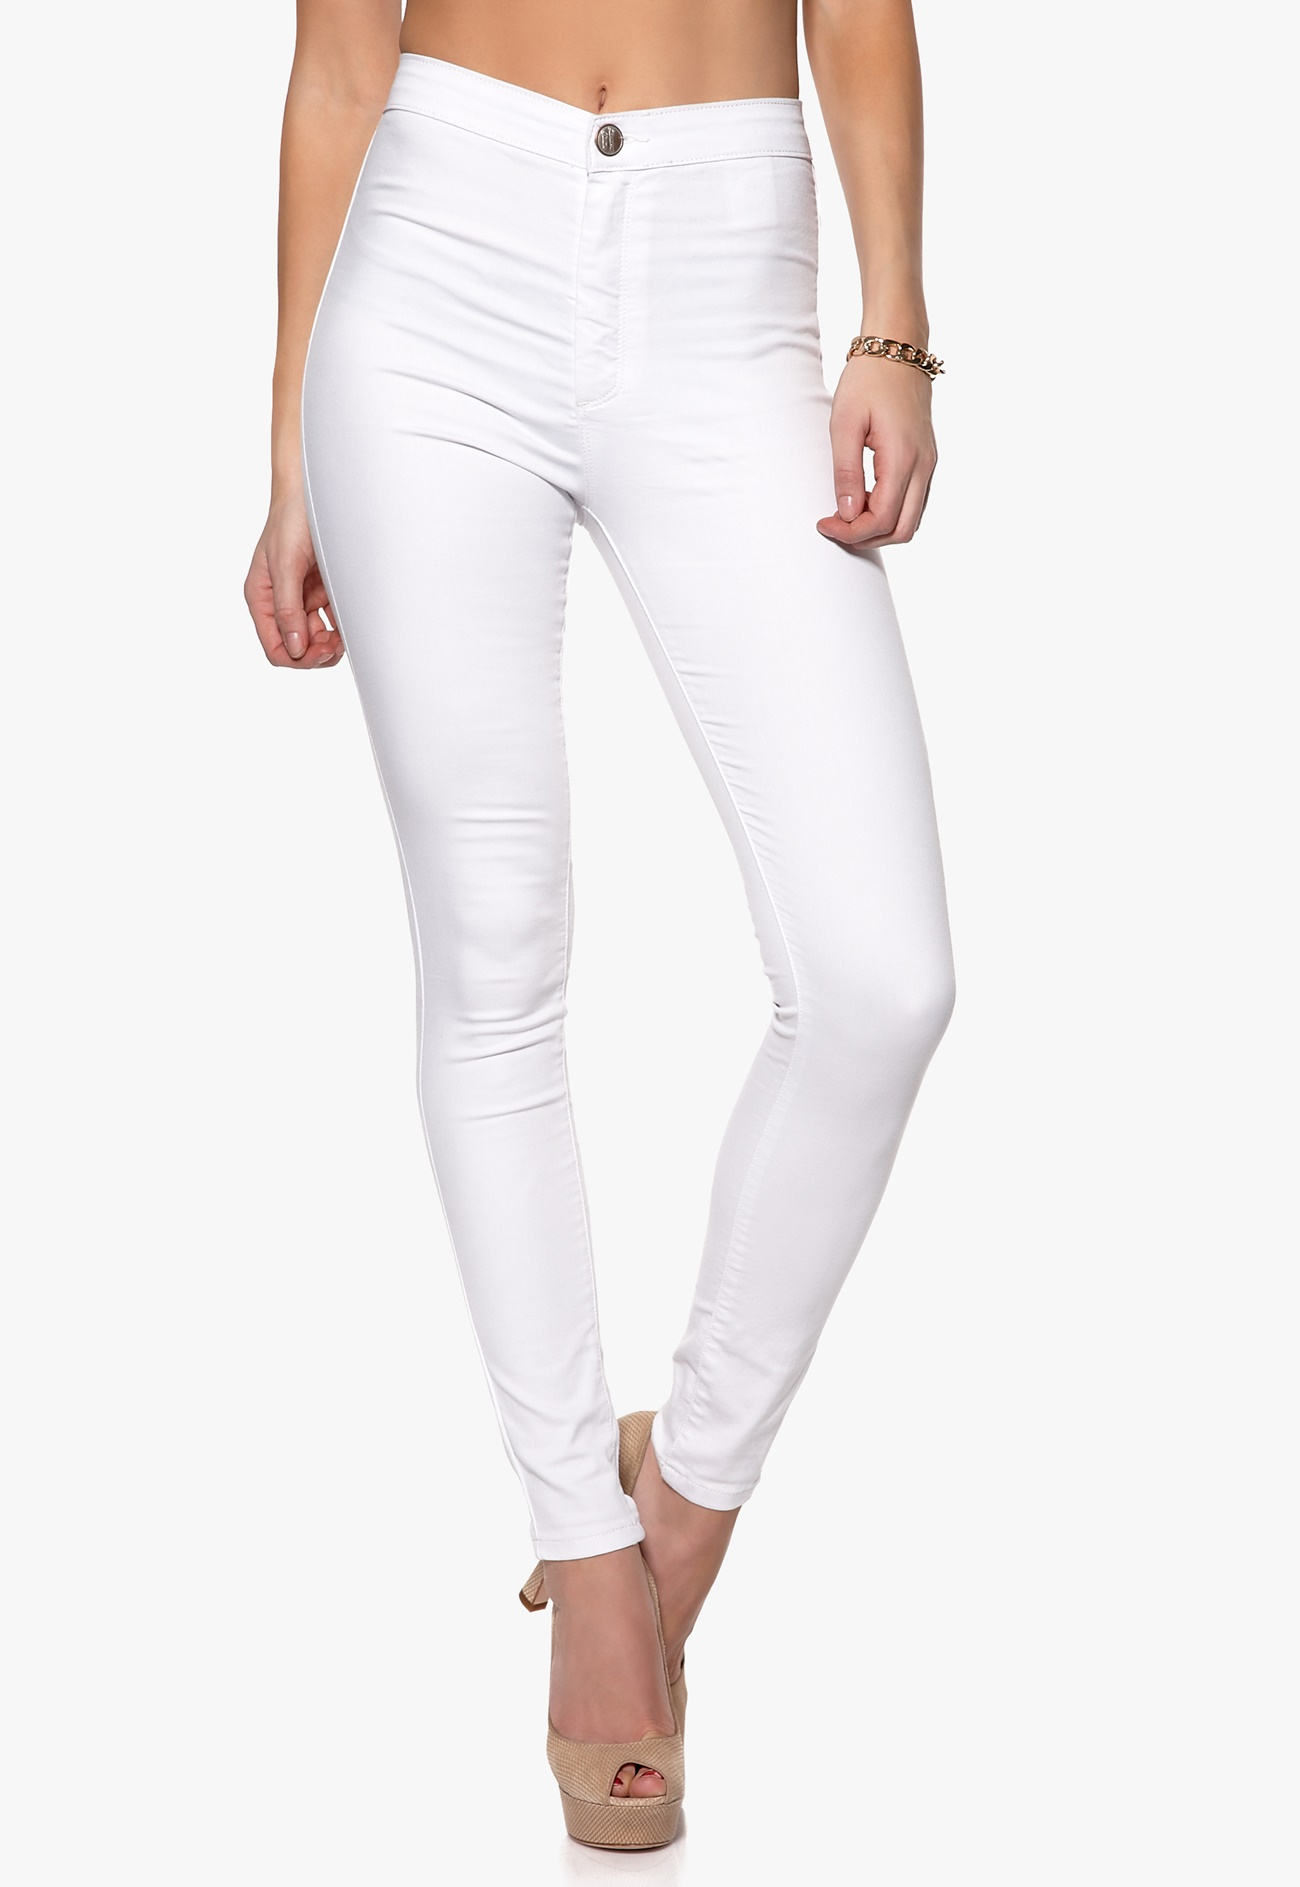 White Skinny Jeans High Waist - Jeans Am